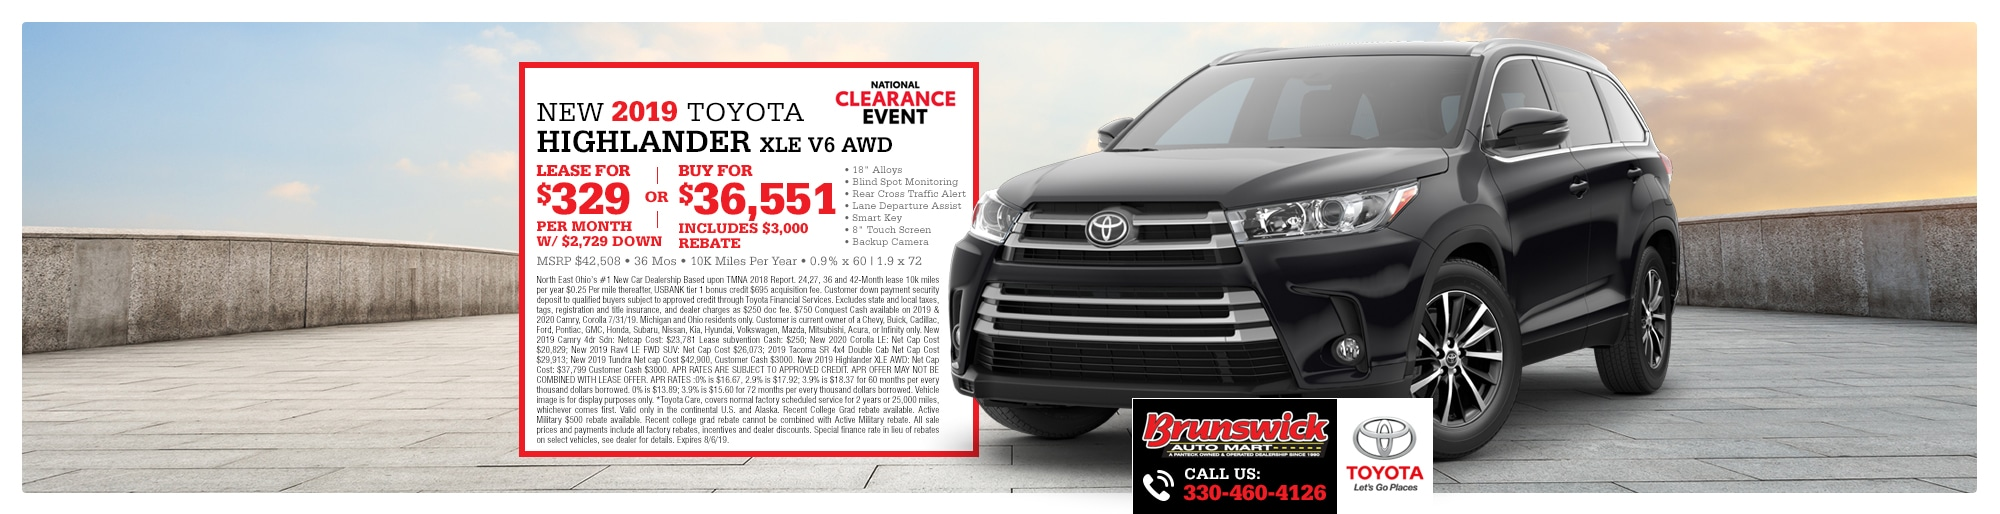 Brunswick Auto Mart Toyota serving the greater Cleveland, Akron